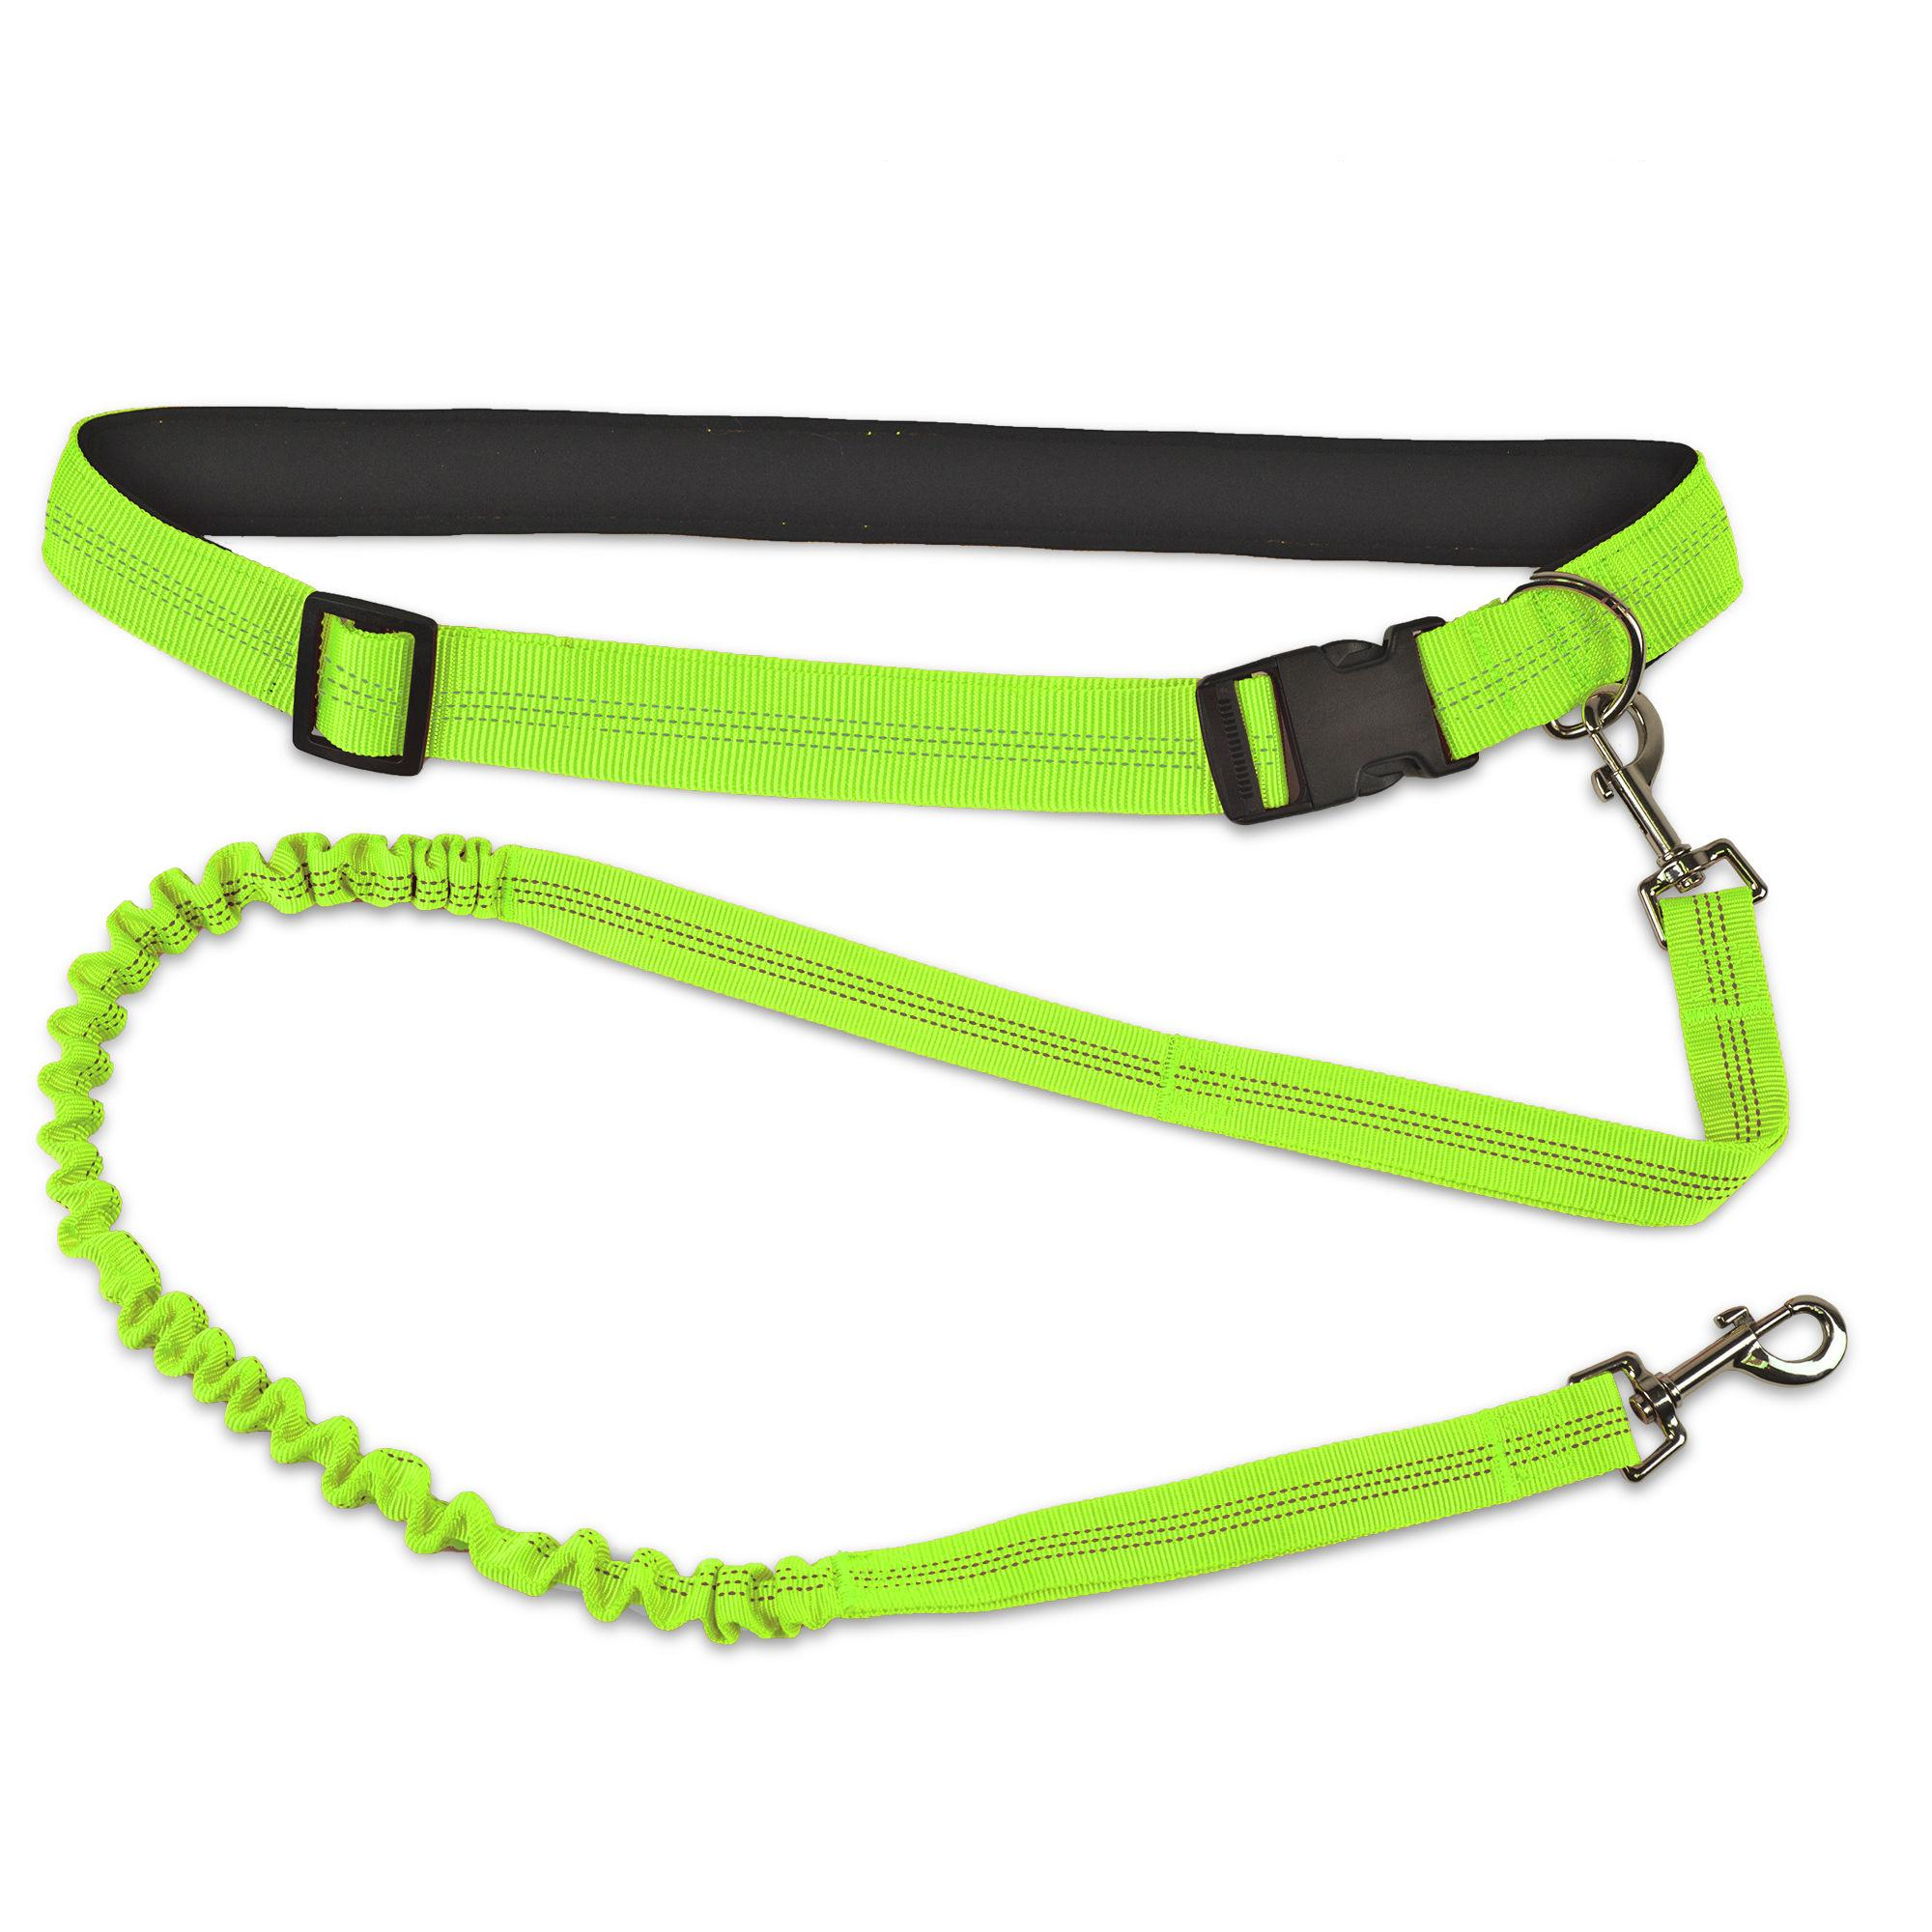 FurHaven Trail Pup Hands-Free Dog Leash - Neon Green